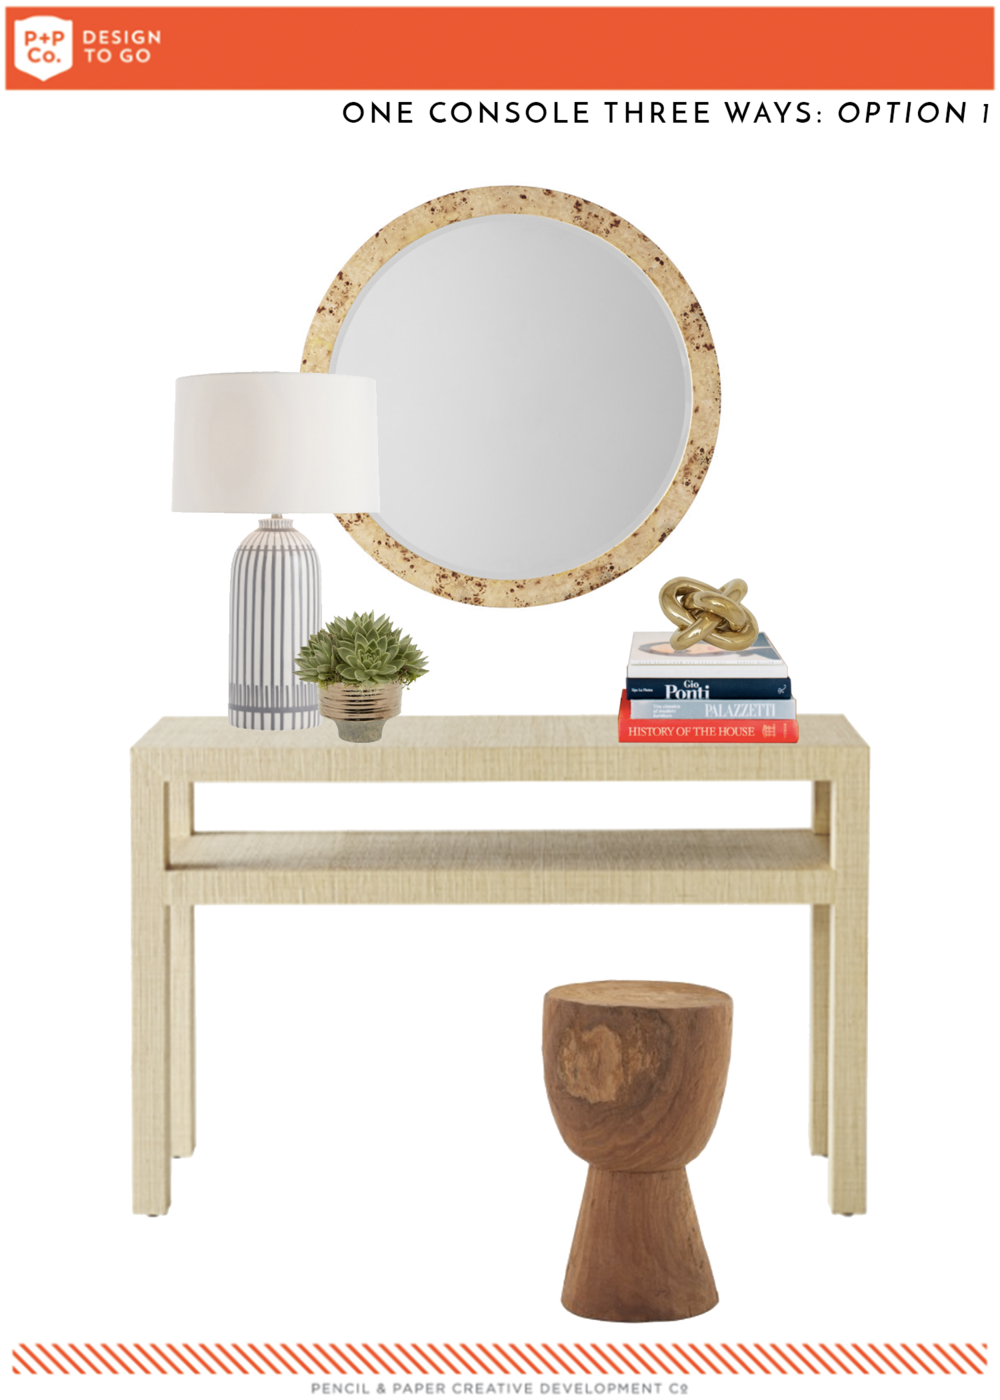 Burl wood mirror  |  Lamp  |  Stool  |  Brass knot  |  Succulent